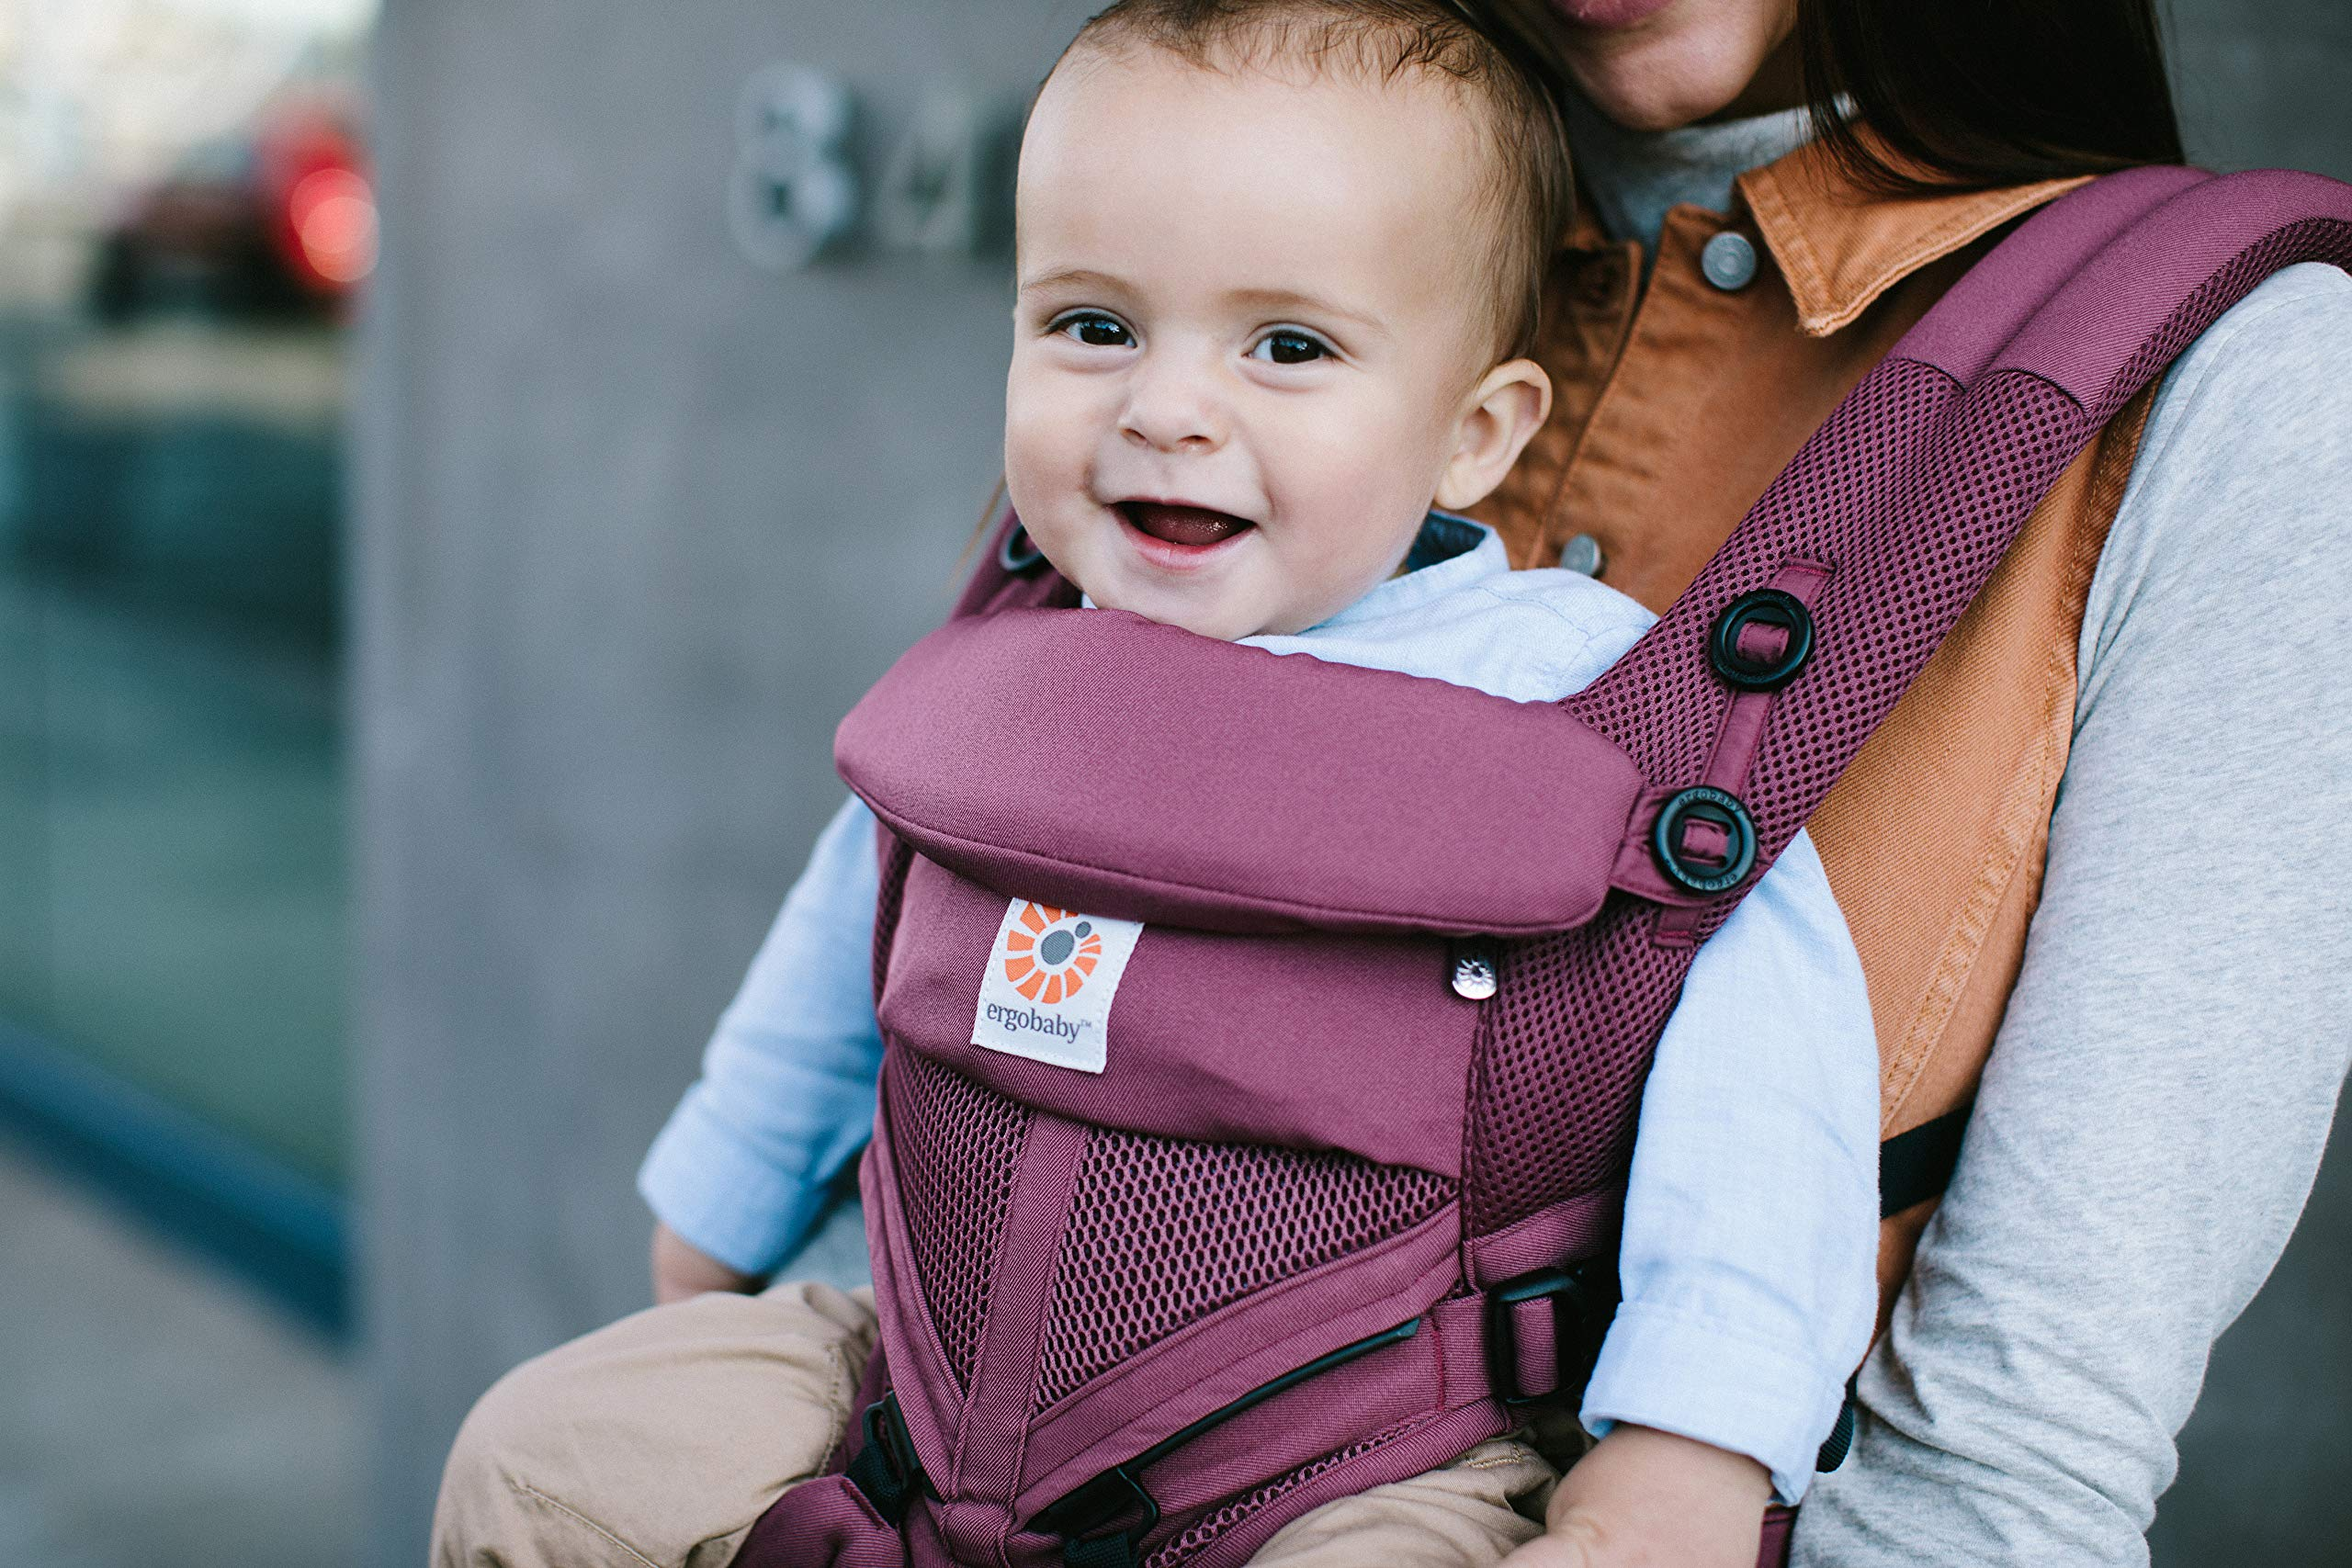 Ergobaby Baby Carrier for Newborn to Toddler, 4-Position Omni 360 Cool Air Plum, Breathable Ergonomic Child Carrier & Backpack Ergobaby BABY CARRIER FOR NEWBORN - Adapts to your growing baby from birth to toddler (7-45lbs). 4 carry positions: front-inward, back, hip, and front-outward. A Baby hood for sun protection (UPF 50+) & privacy for sleeping or breastfeeding is included. COMFORT - Exceptional lower back comfort with padded lumbar support waist belt & extra padded shoulder straps with the option to wear 2 ways: crossed or backpack style. Waist belt can be worn high or low to maximize comfort. COOL & BREATHABLE - Our Cool Air Mesh baby carriers are made with soft and durable mesh fabric that provides our renowned ergonomic support for baby while allowing for ultimate breathability and airflow 6